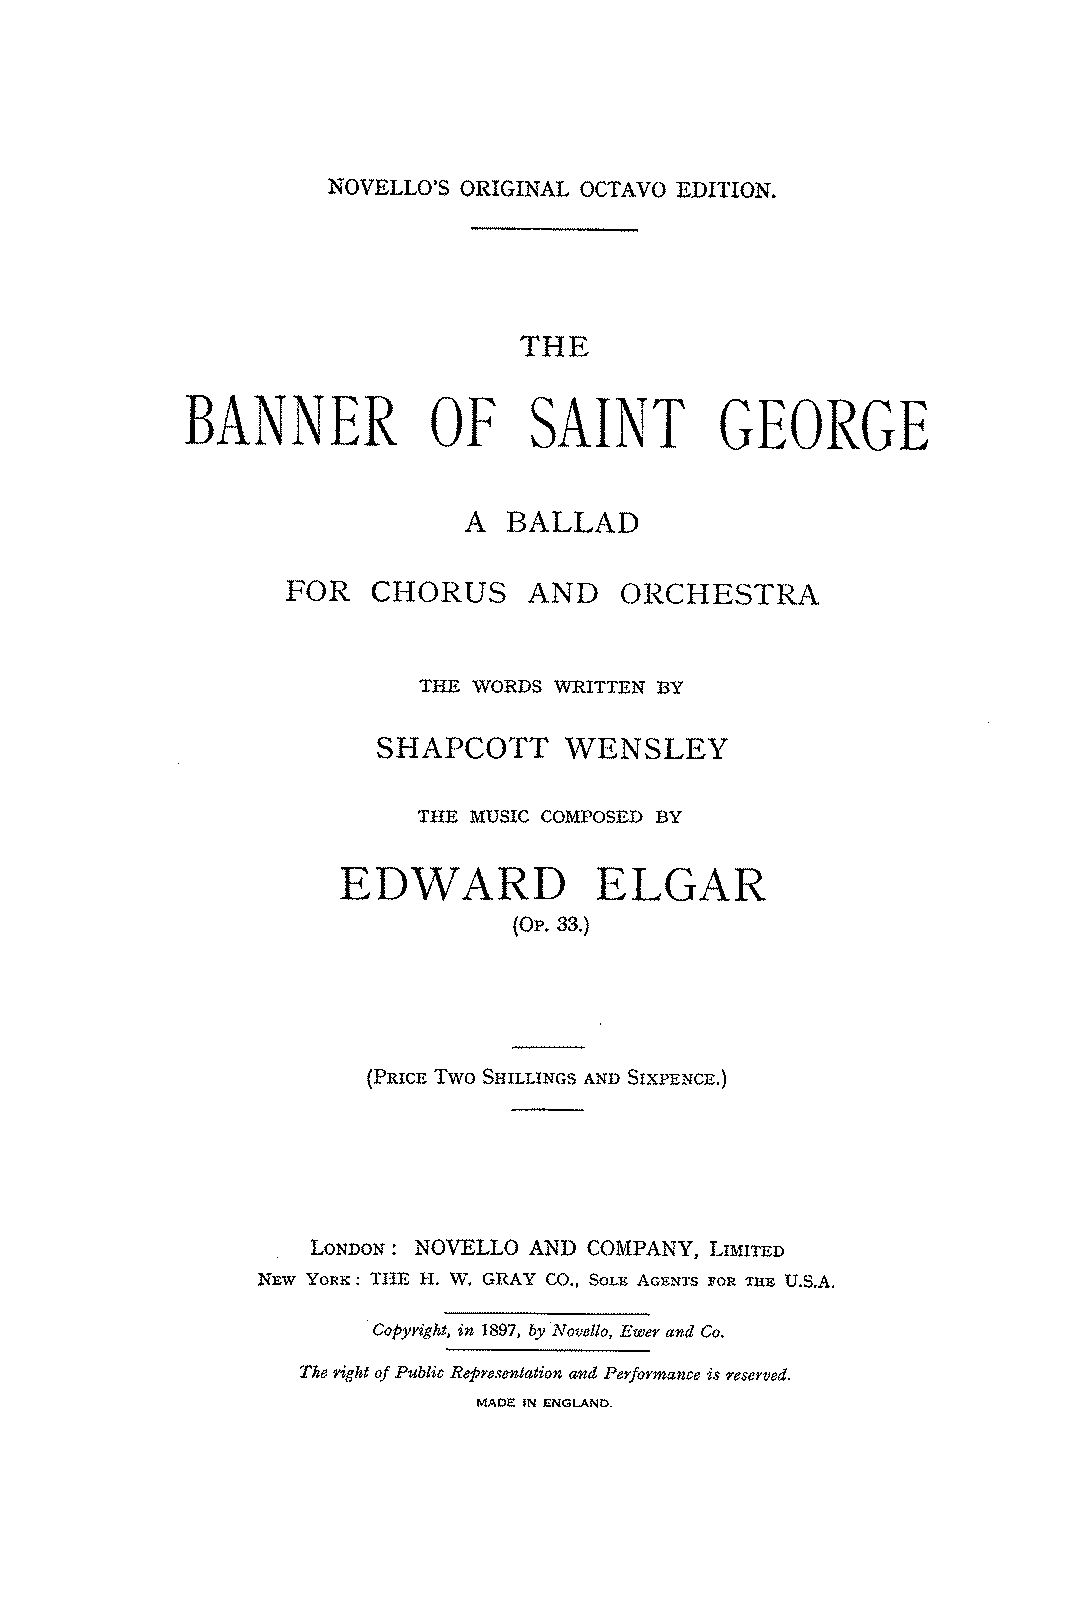 PMLP345197-Elgar The Banner of St. George Op33 VS.pdf